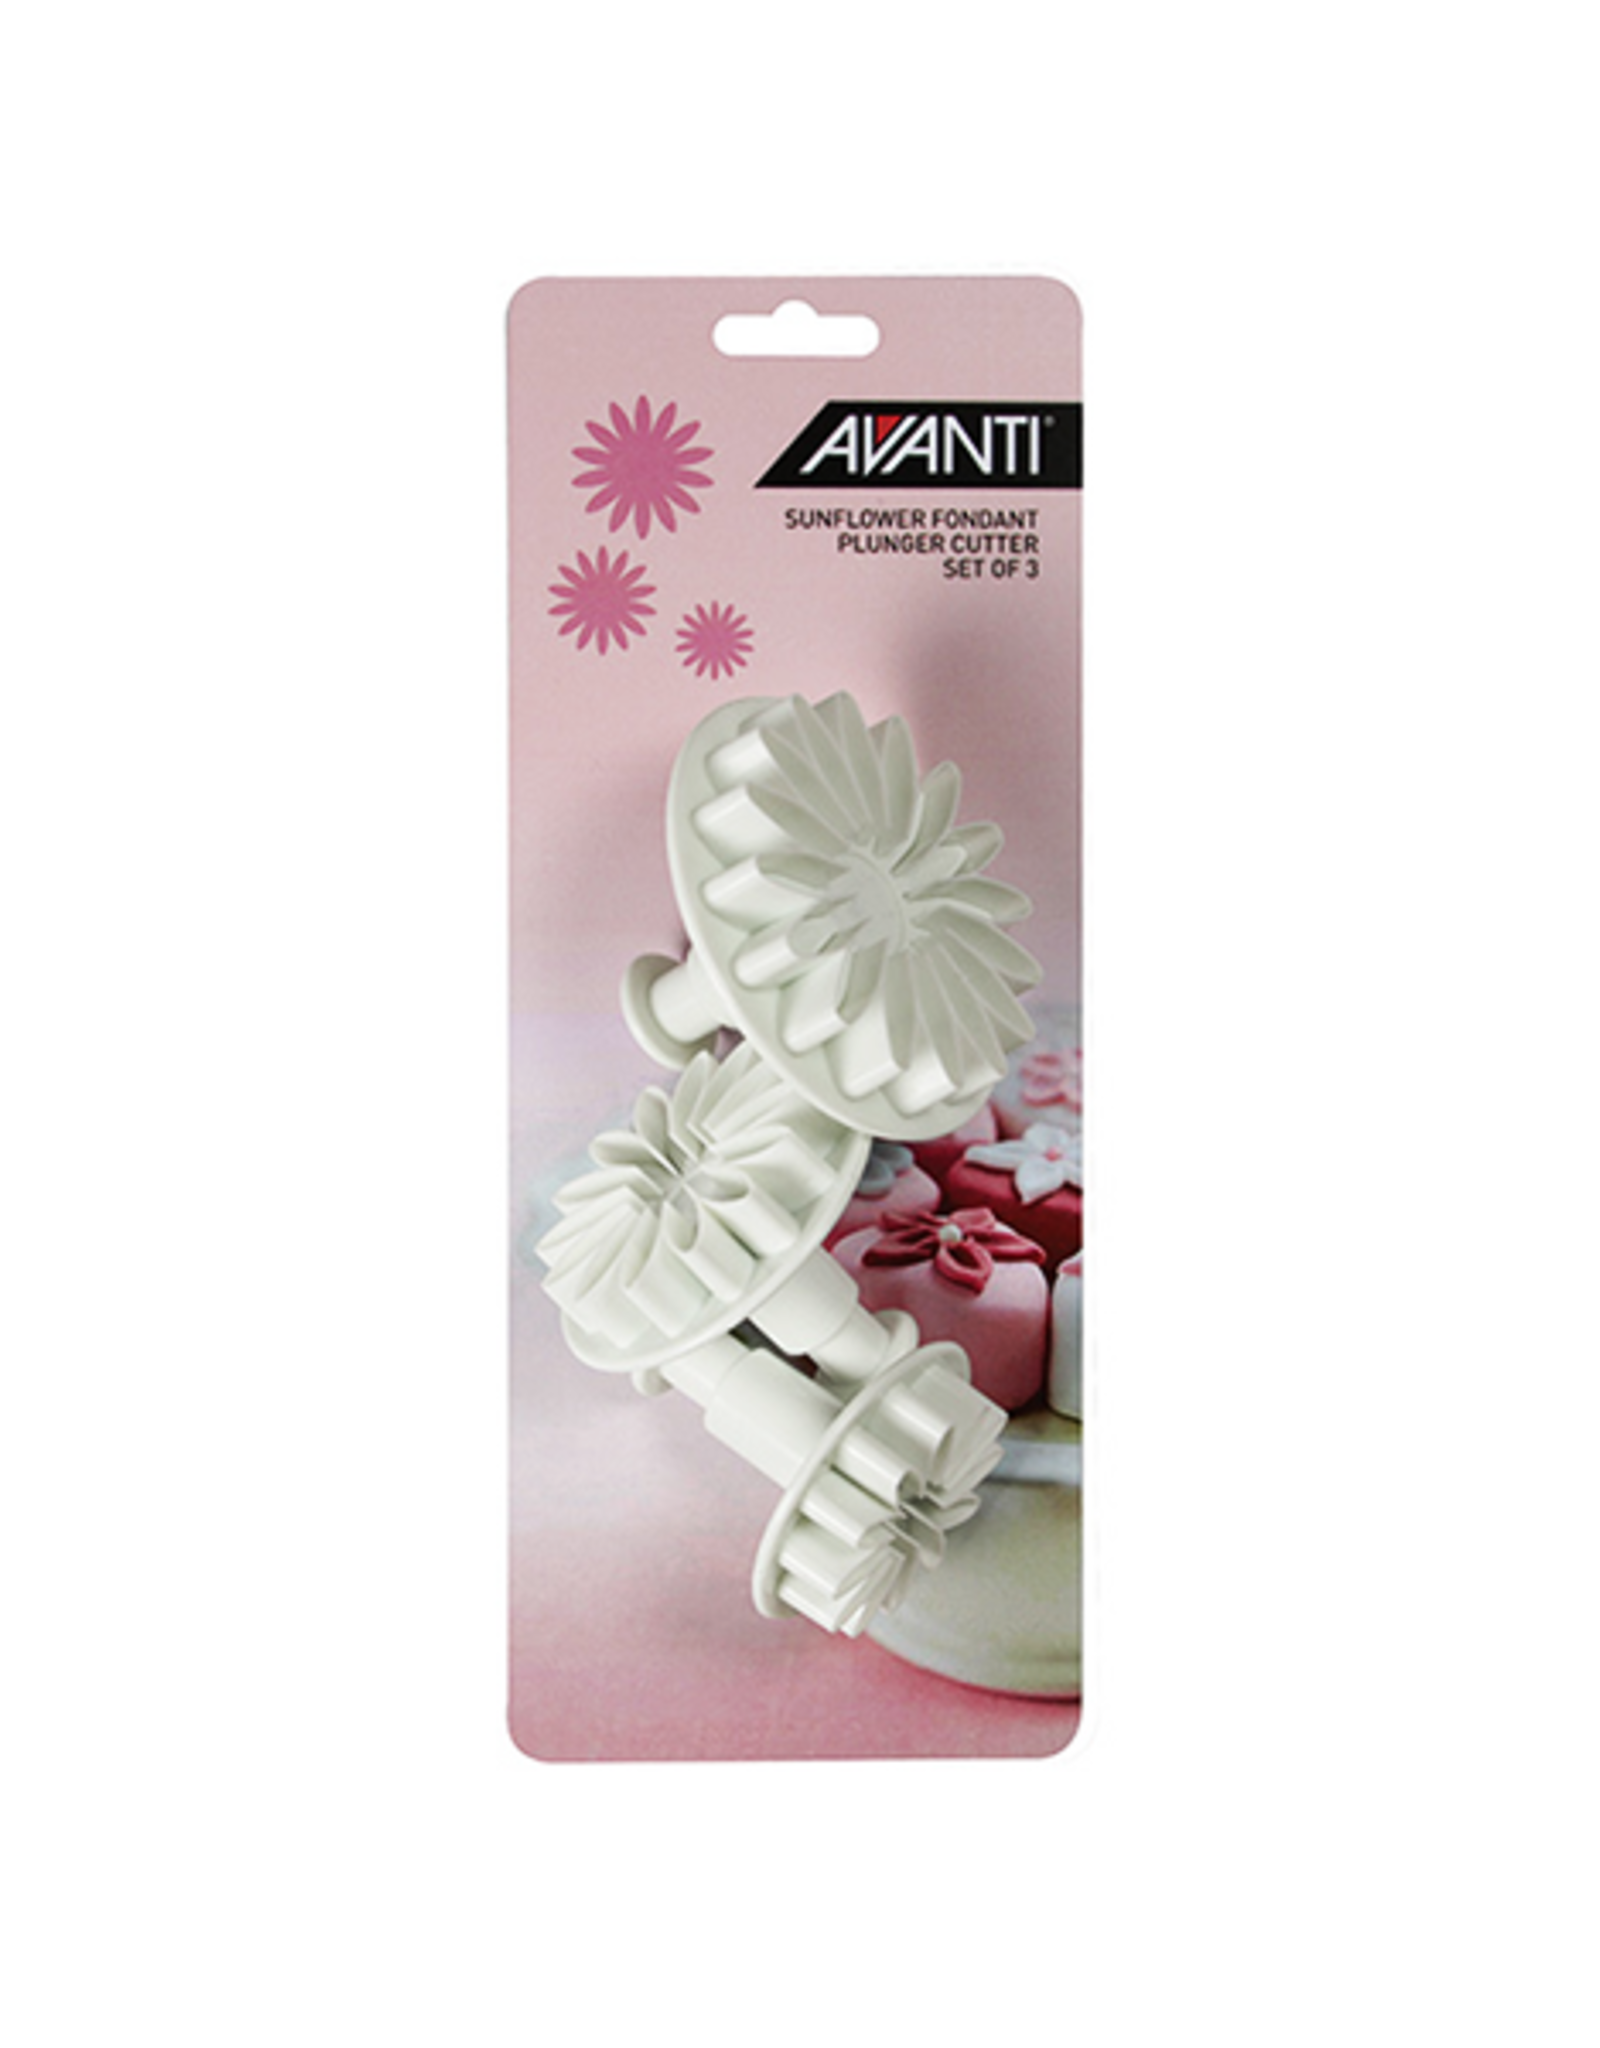 Avanti Homewares Sunflower Fondant Plunger Cutter Set